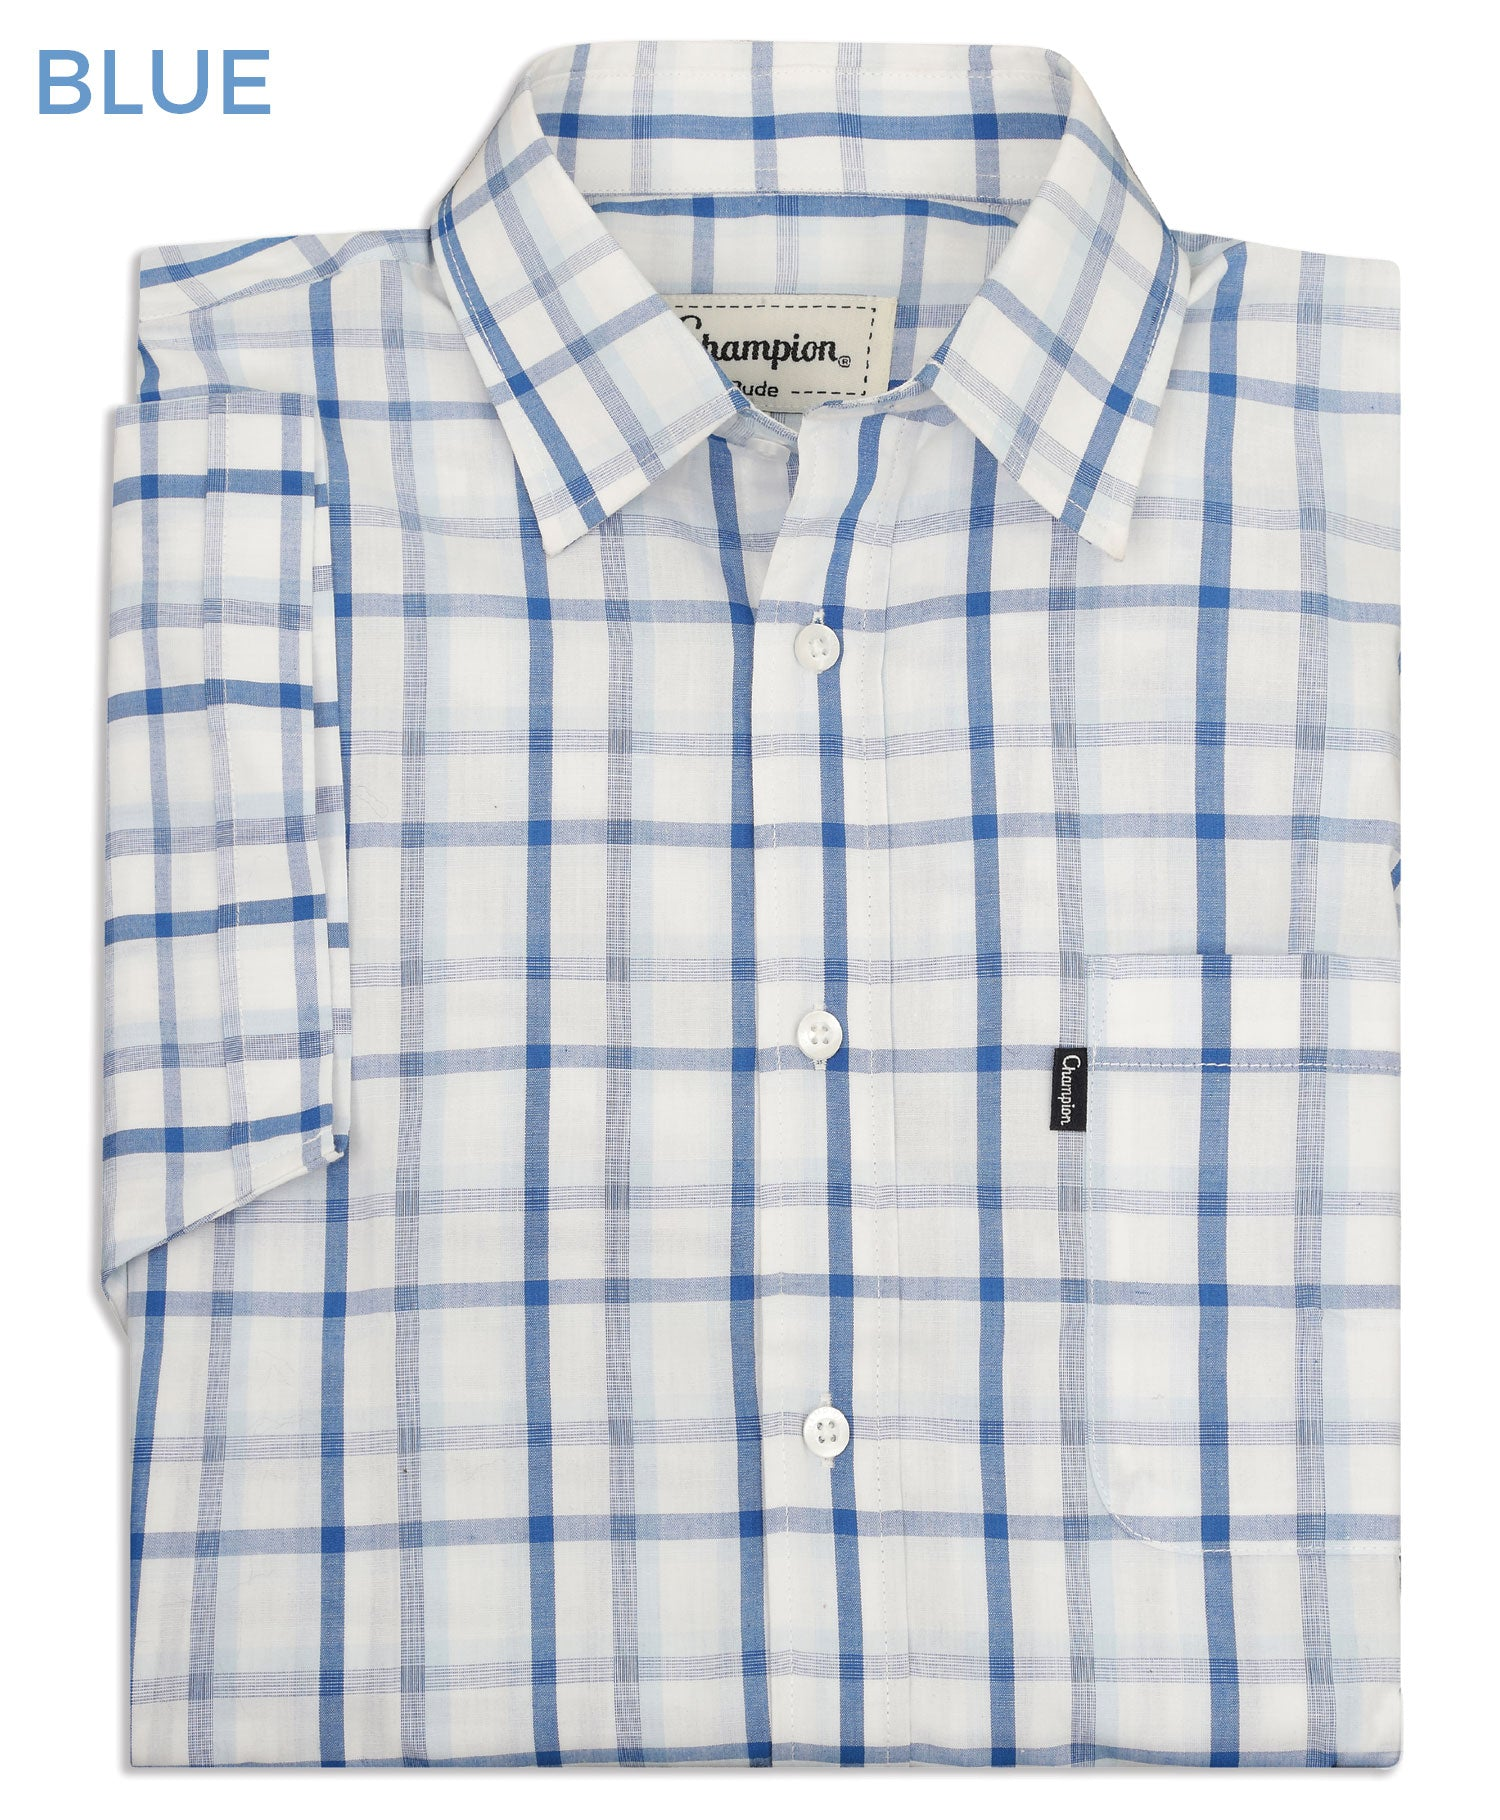 Folded shirt in blue check